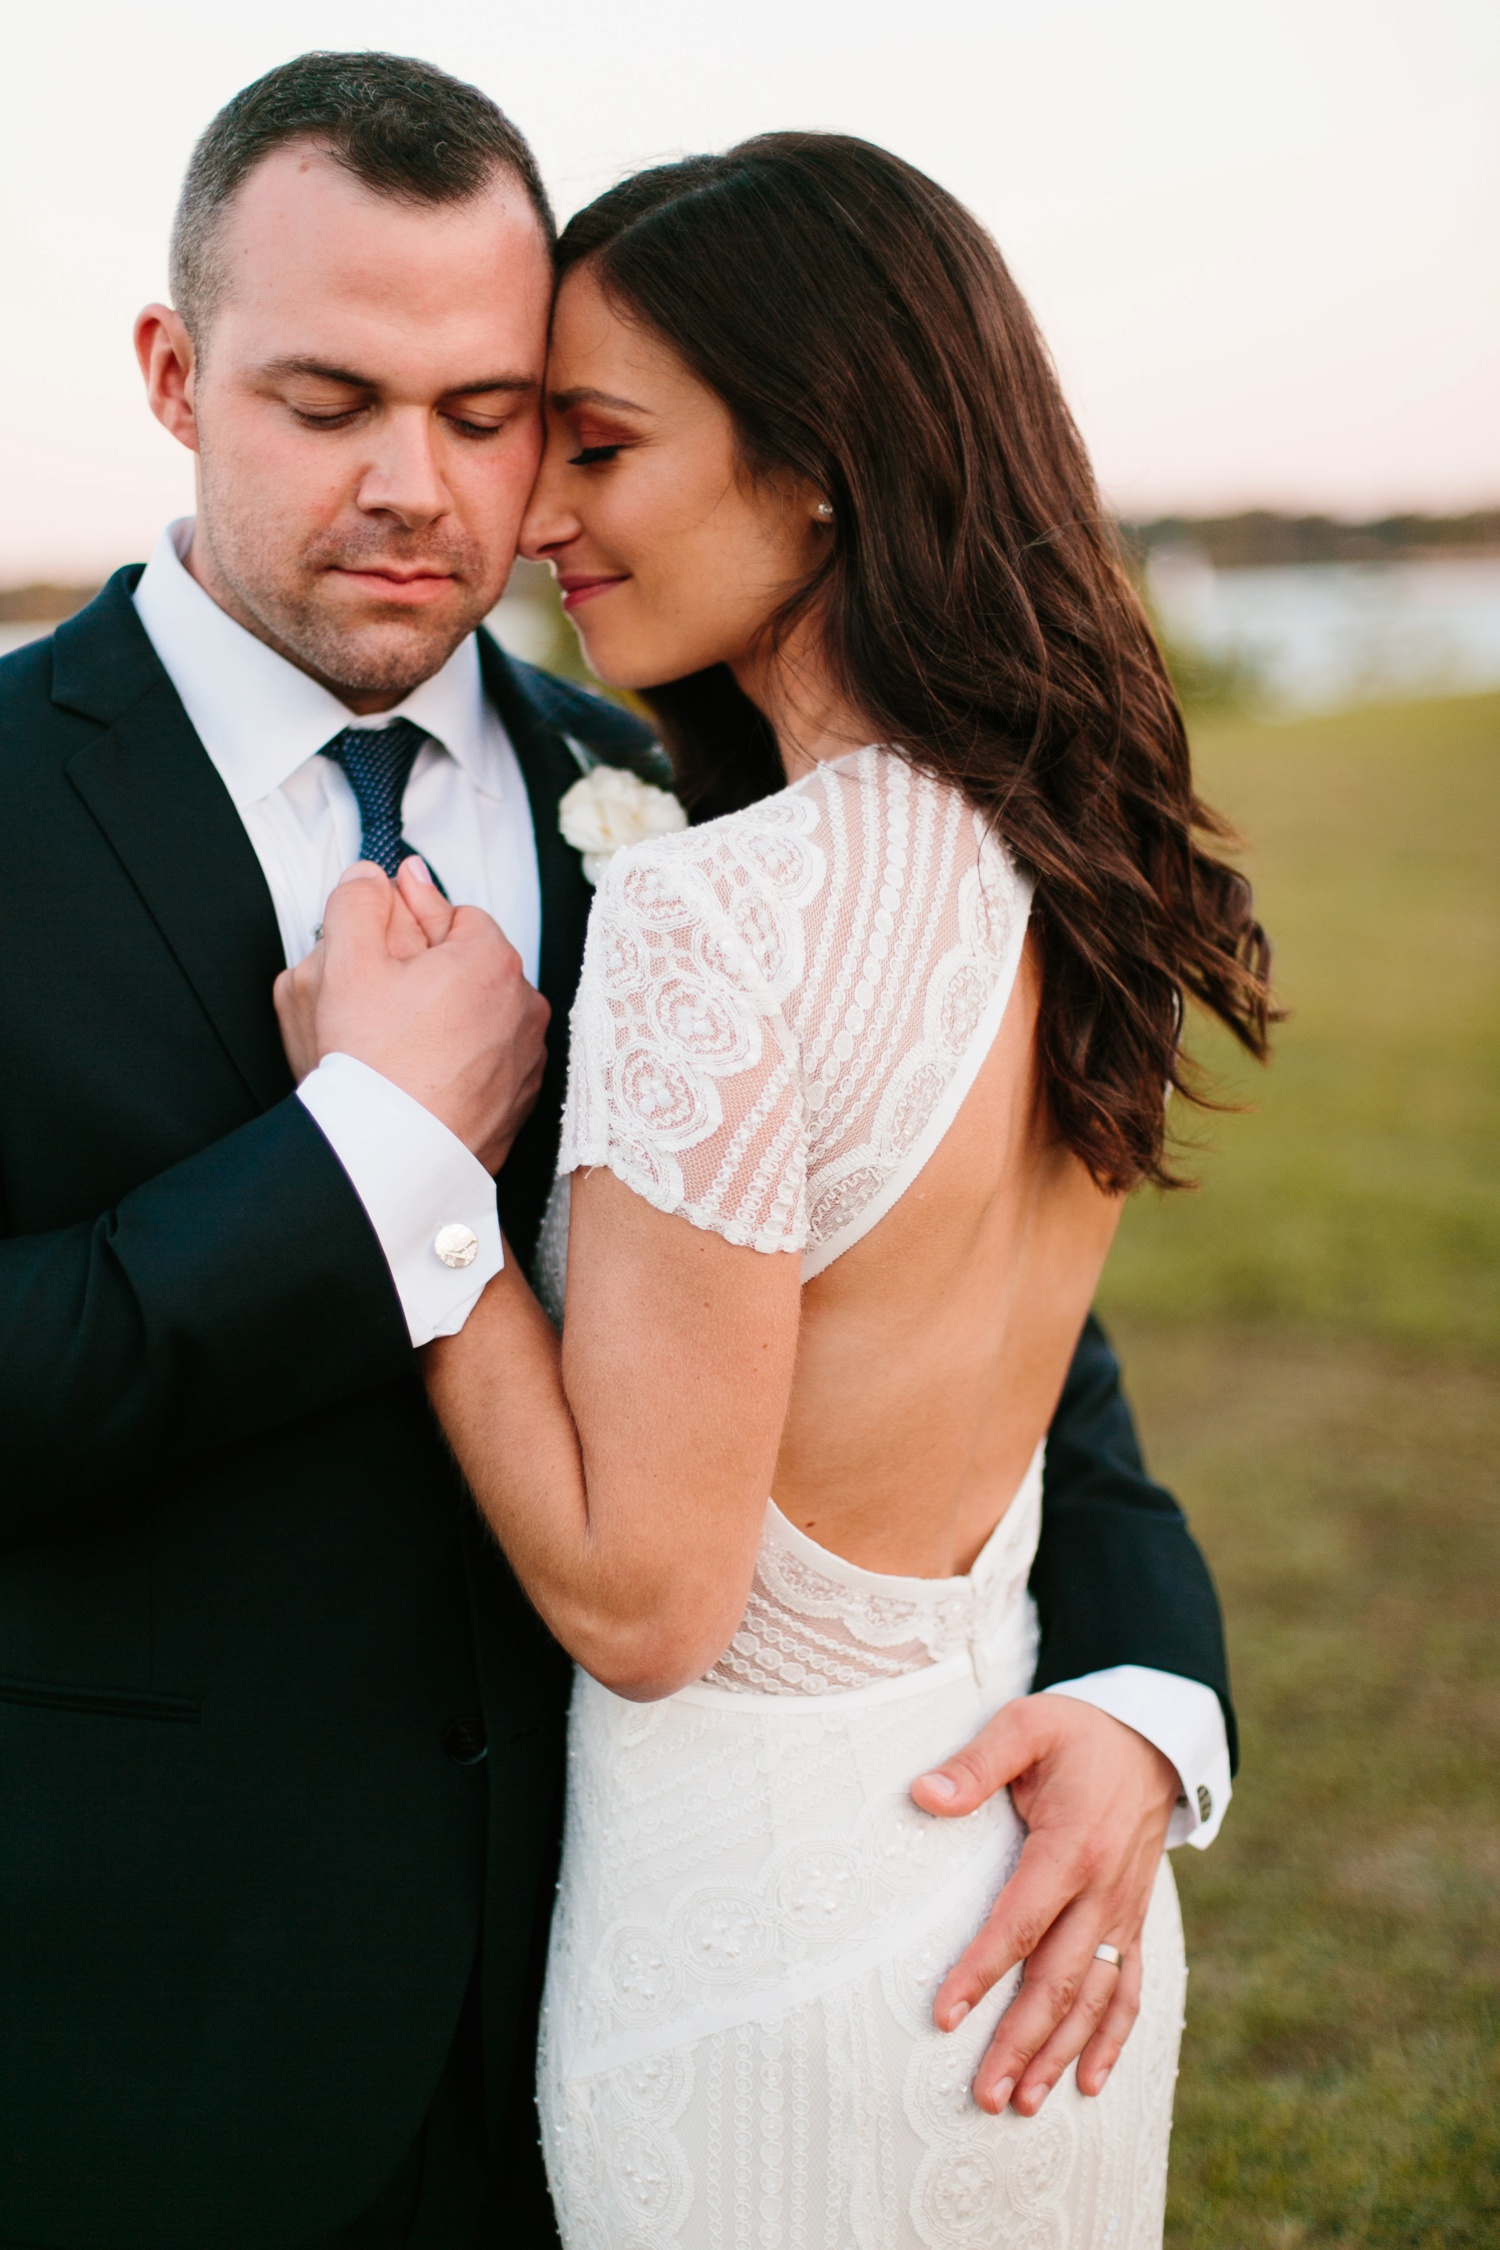 Kadee + Tyler | a raw, emotional wedding at the Filter Building on White Rock Lake in Dallas, TX by North Texas Wedding Photographer, Rachel Meagan Photography 178